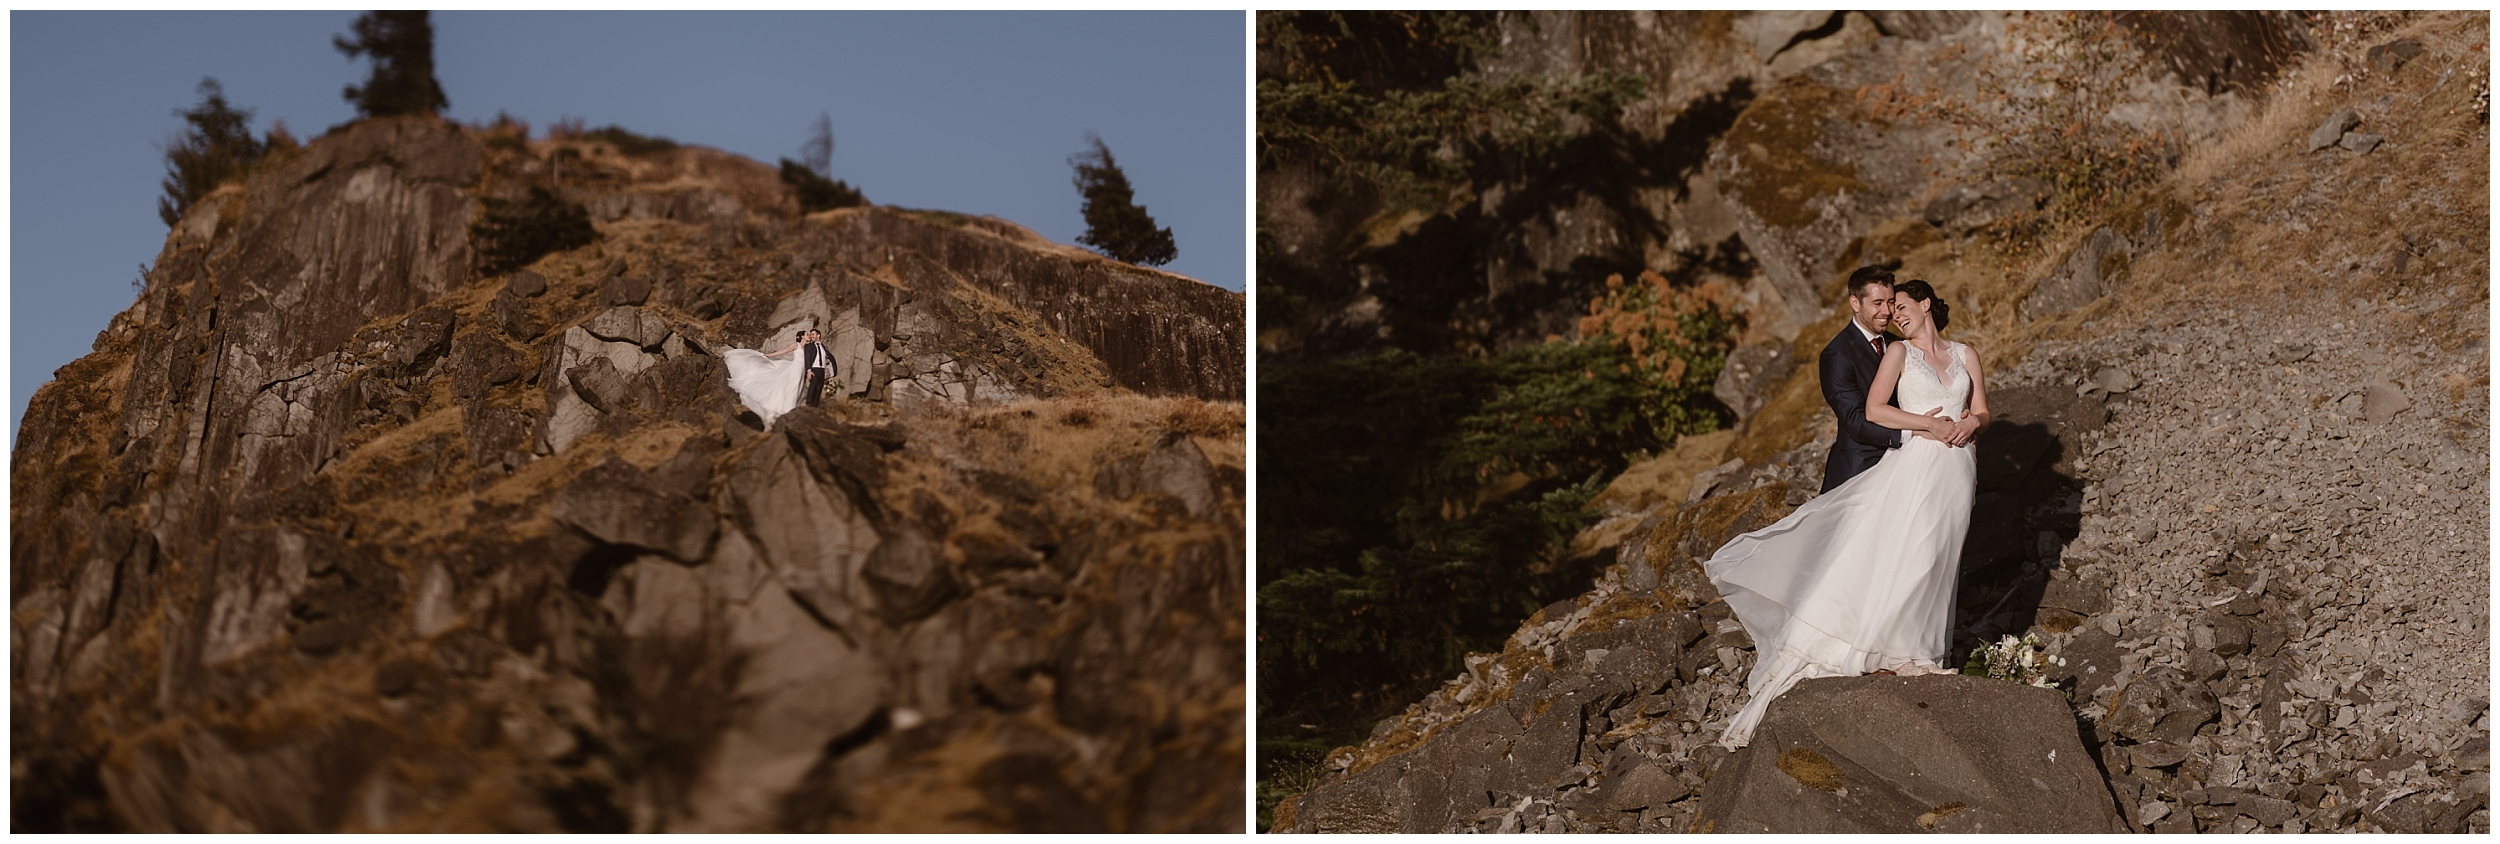 These side-by-side elopement pictures show Lauryn and David scrambling up the side of a craggy rock face in the Columbia River Gorge. When they get to the top of the rock, they hold each other close.